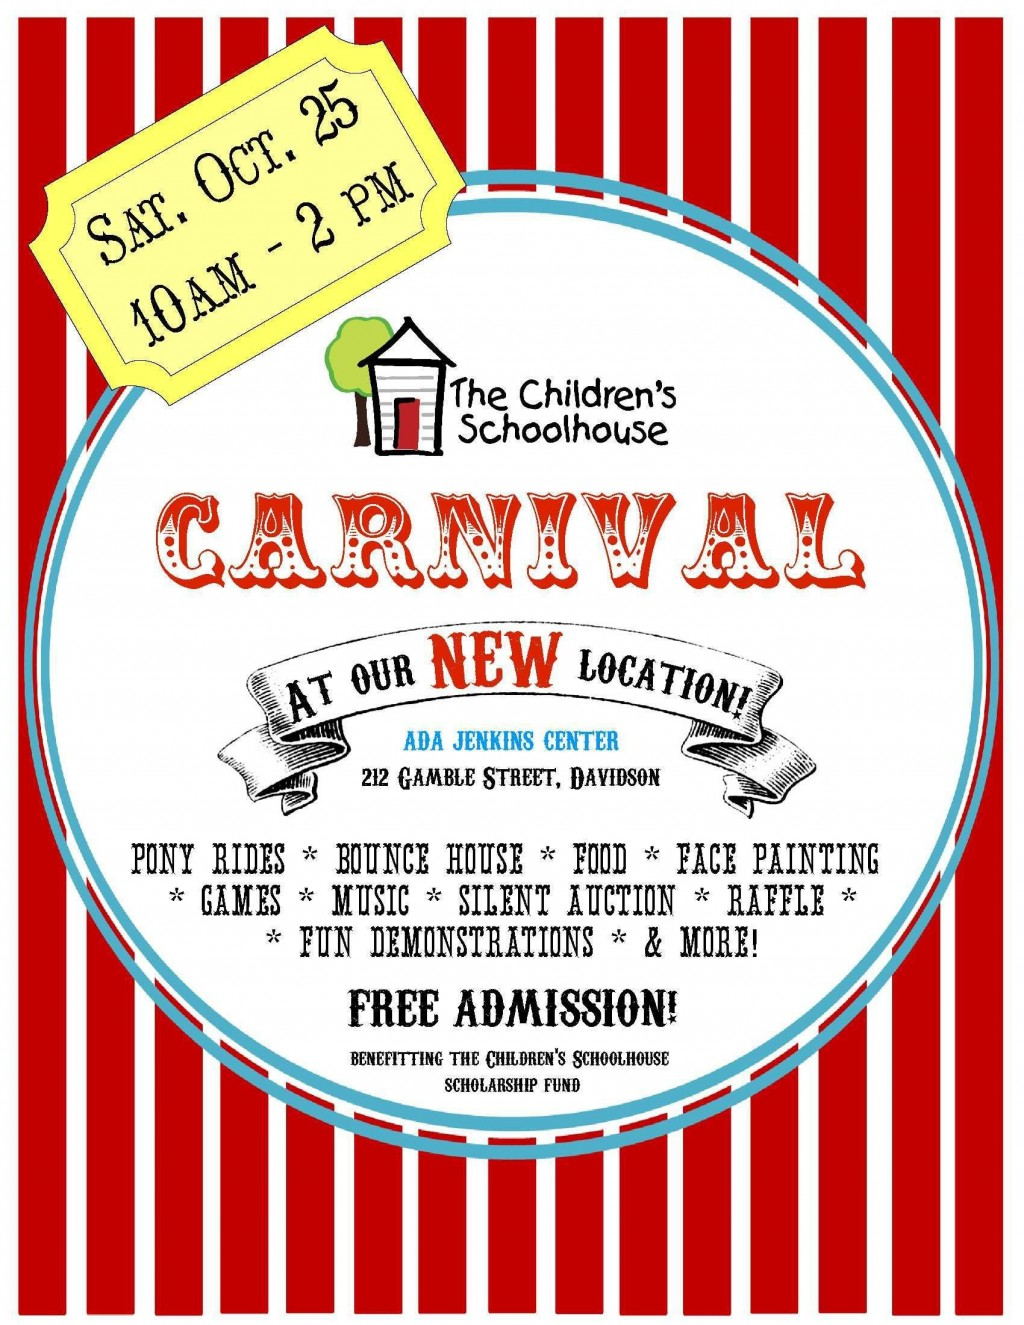 006 Stunning Free School Carnival Flyer Template Example  Templates DownloadLarge